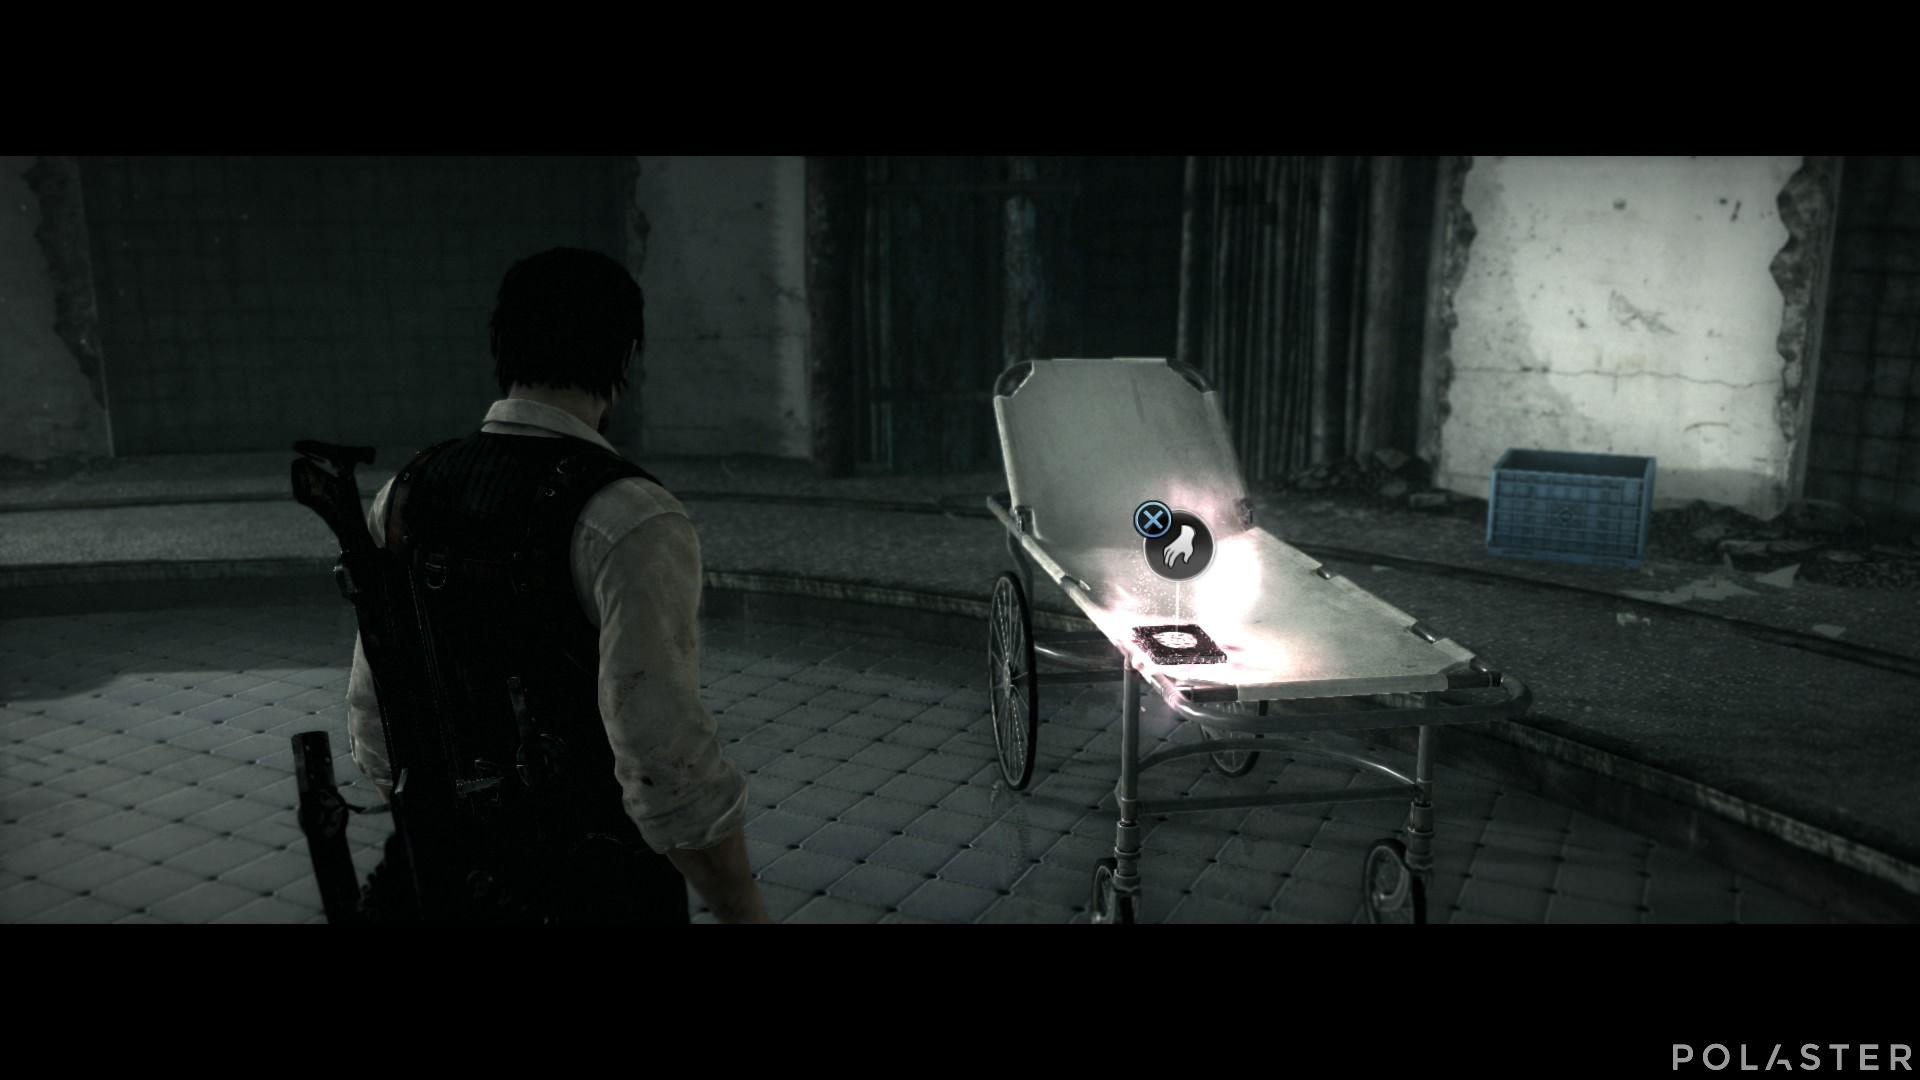 The Evil Within - Coleccionables - Documento personal: Entrada del diario - Junio de 2009